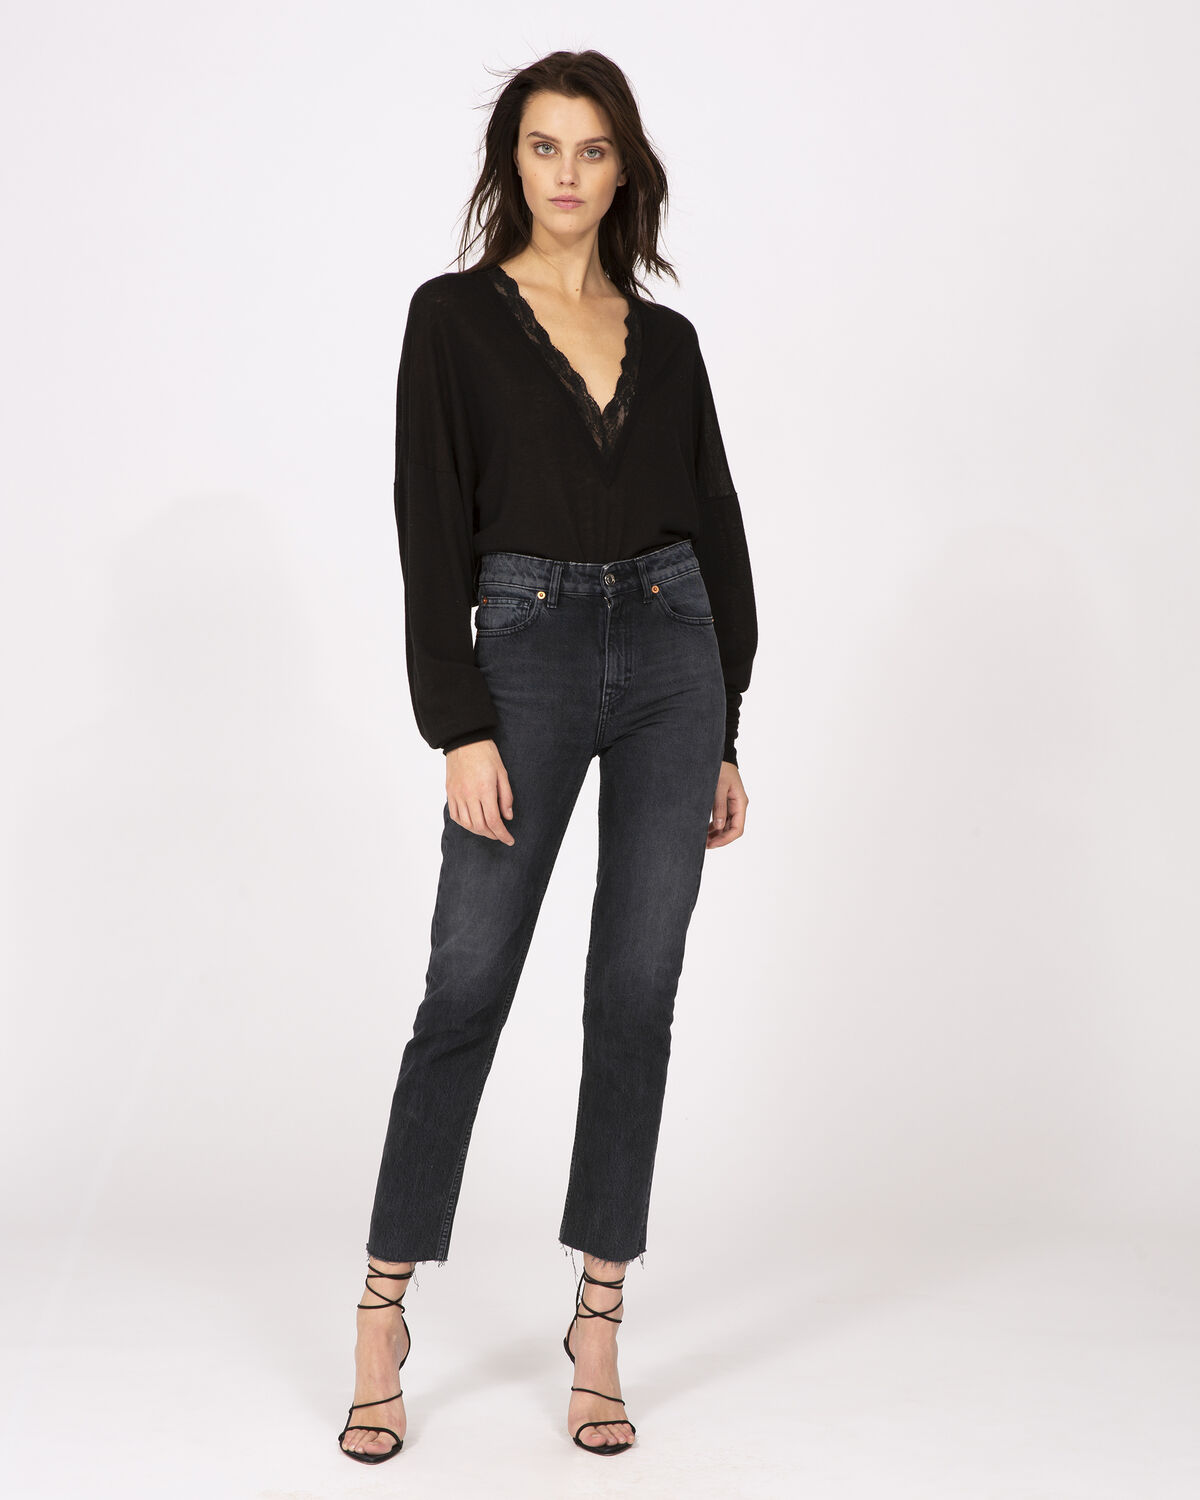 Chary Jeans Black And Grey by IRO Paris